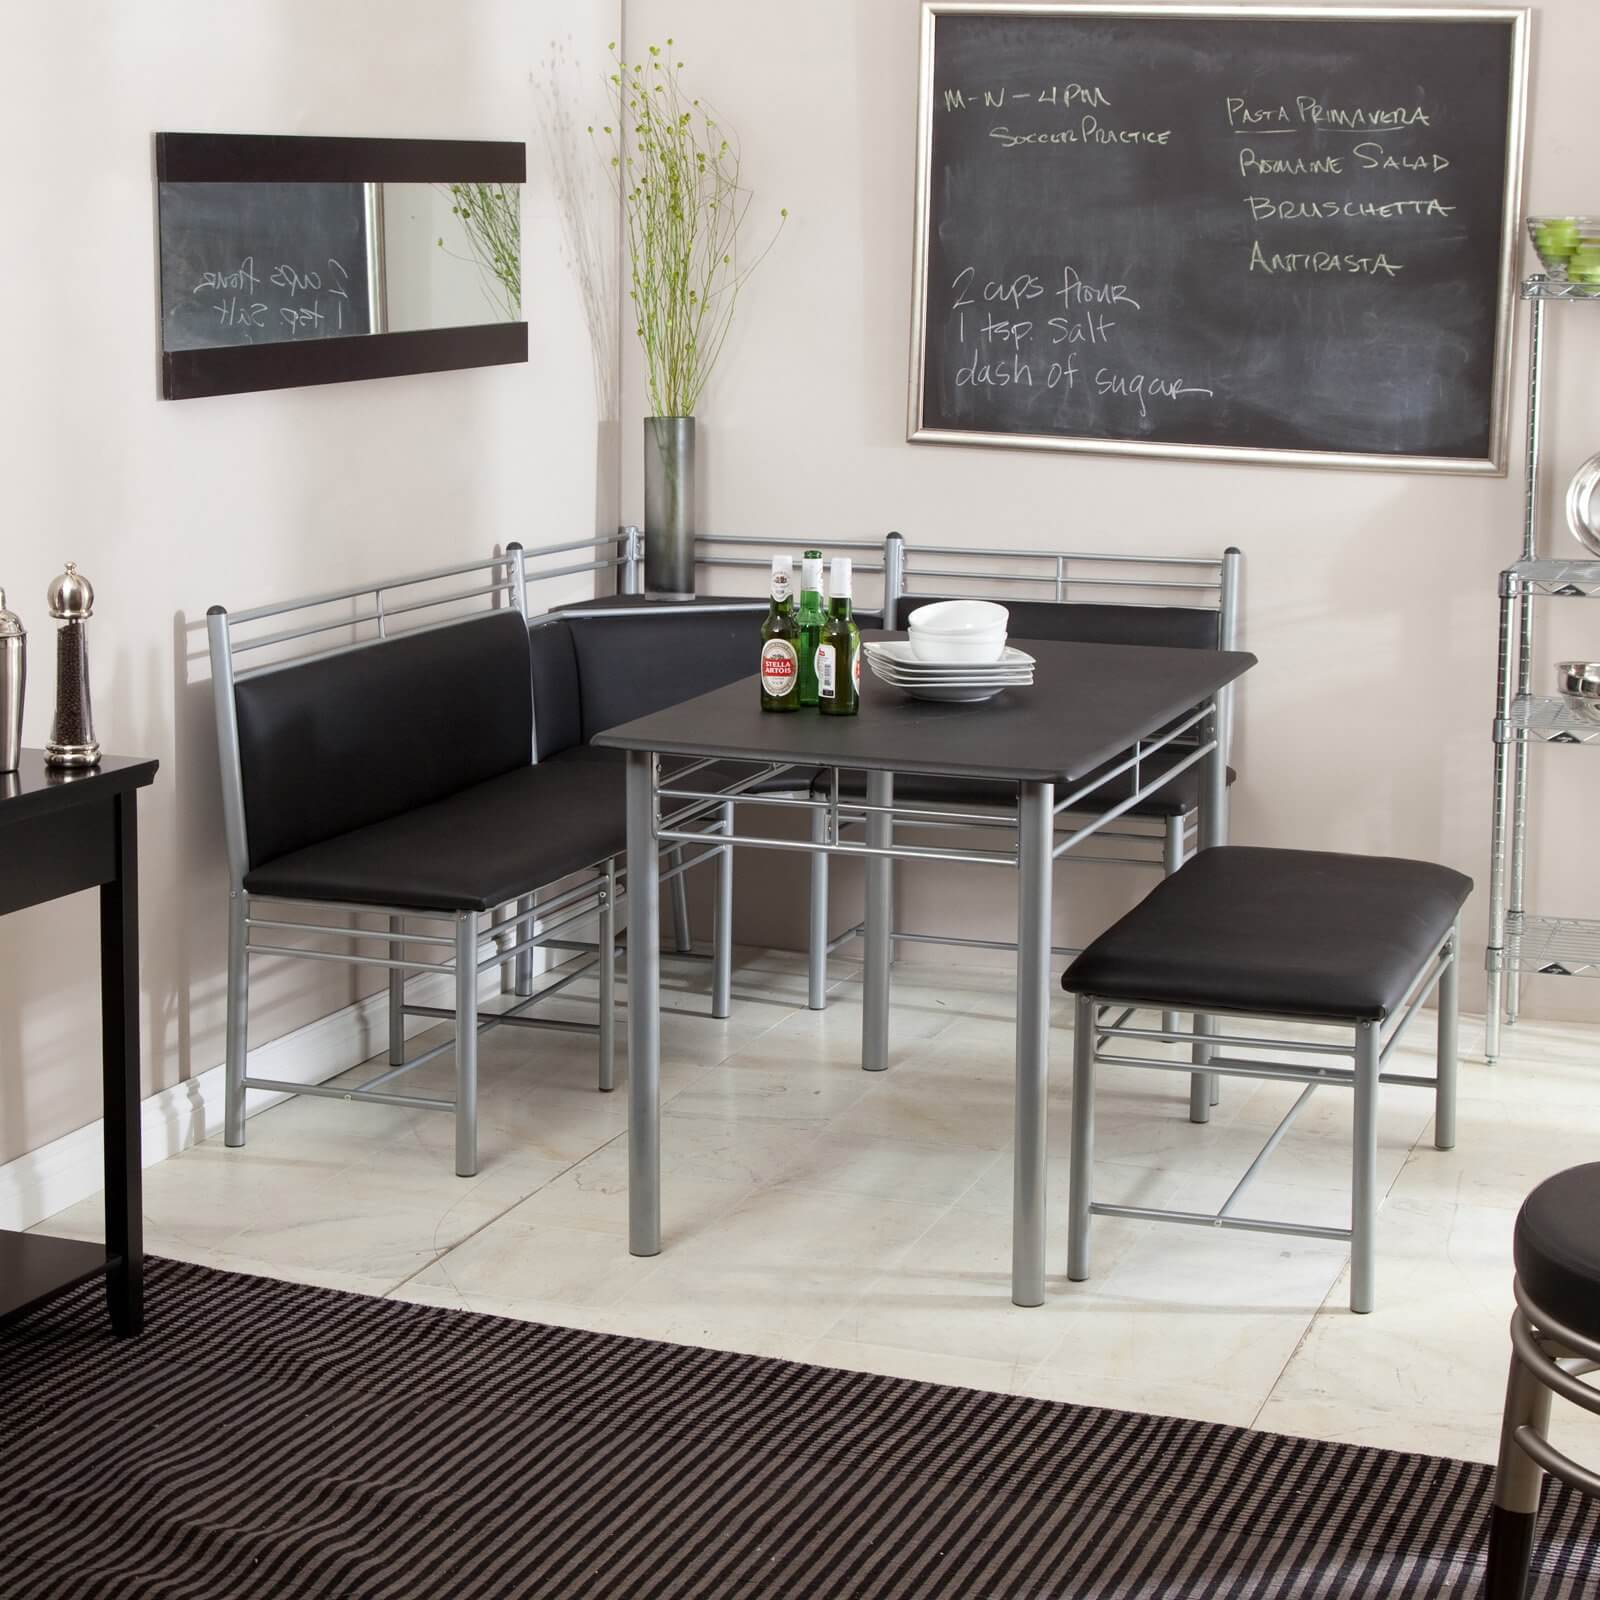 12. Modern Breakfast Nook Set : kitchen table with booth seating - hauntedcathouse.org